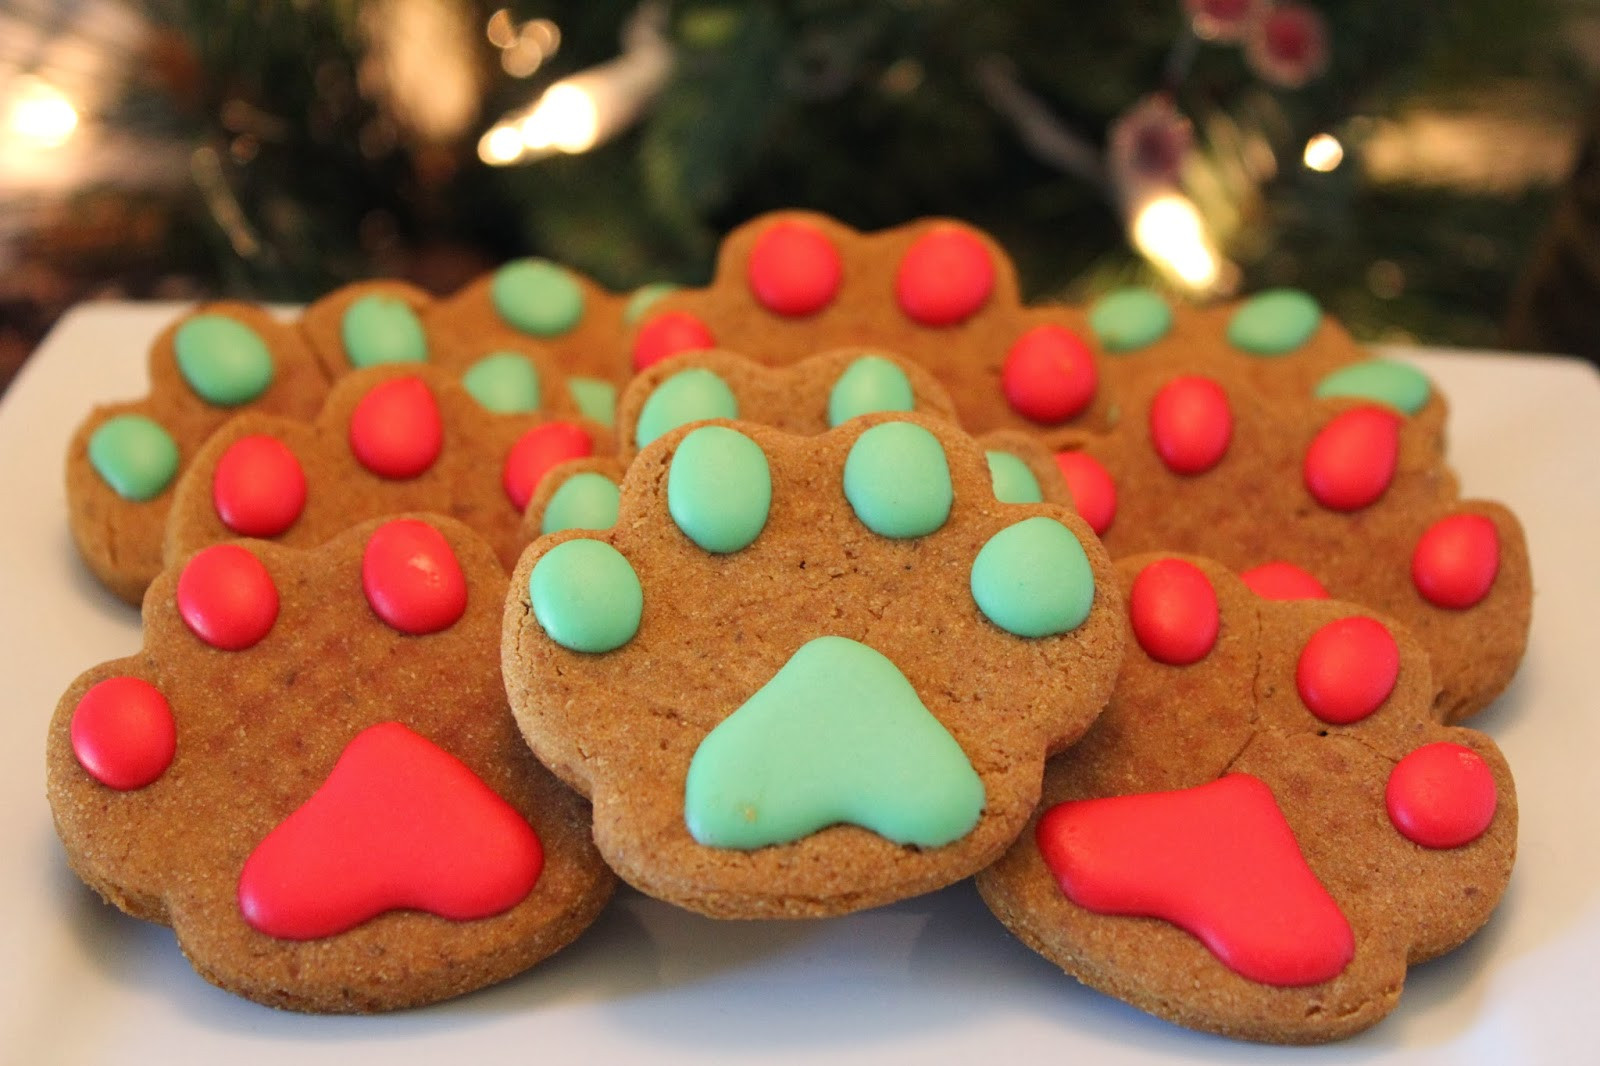 Dog Christmas Cookies  It s TIME Christmas Dog Treats are here Treat Dreams